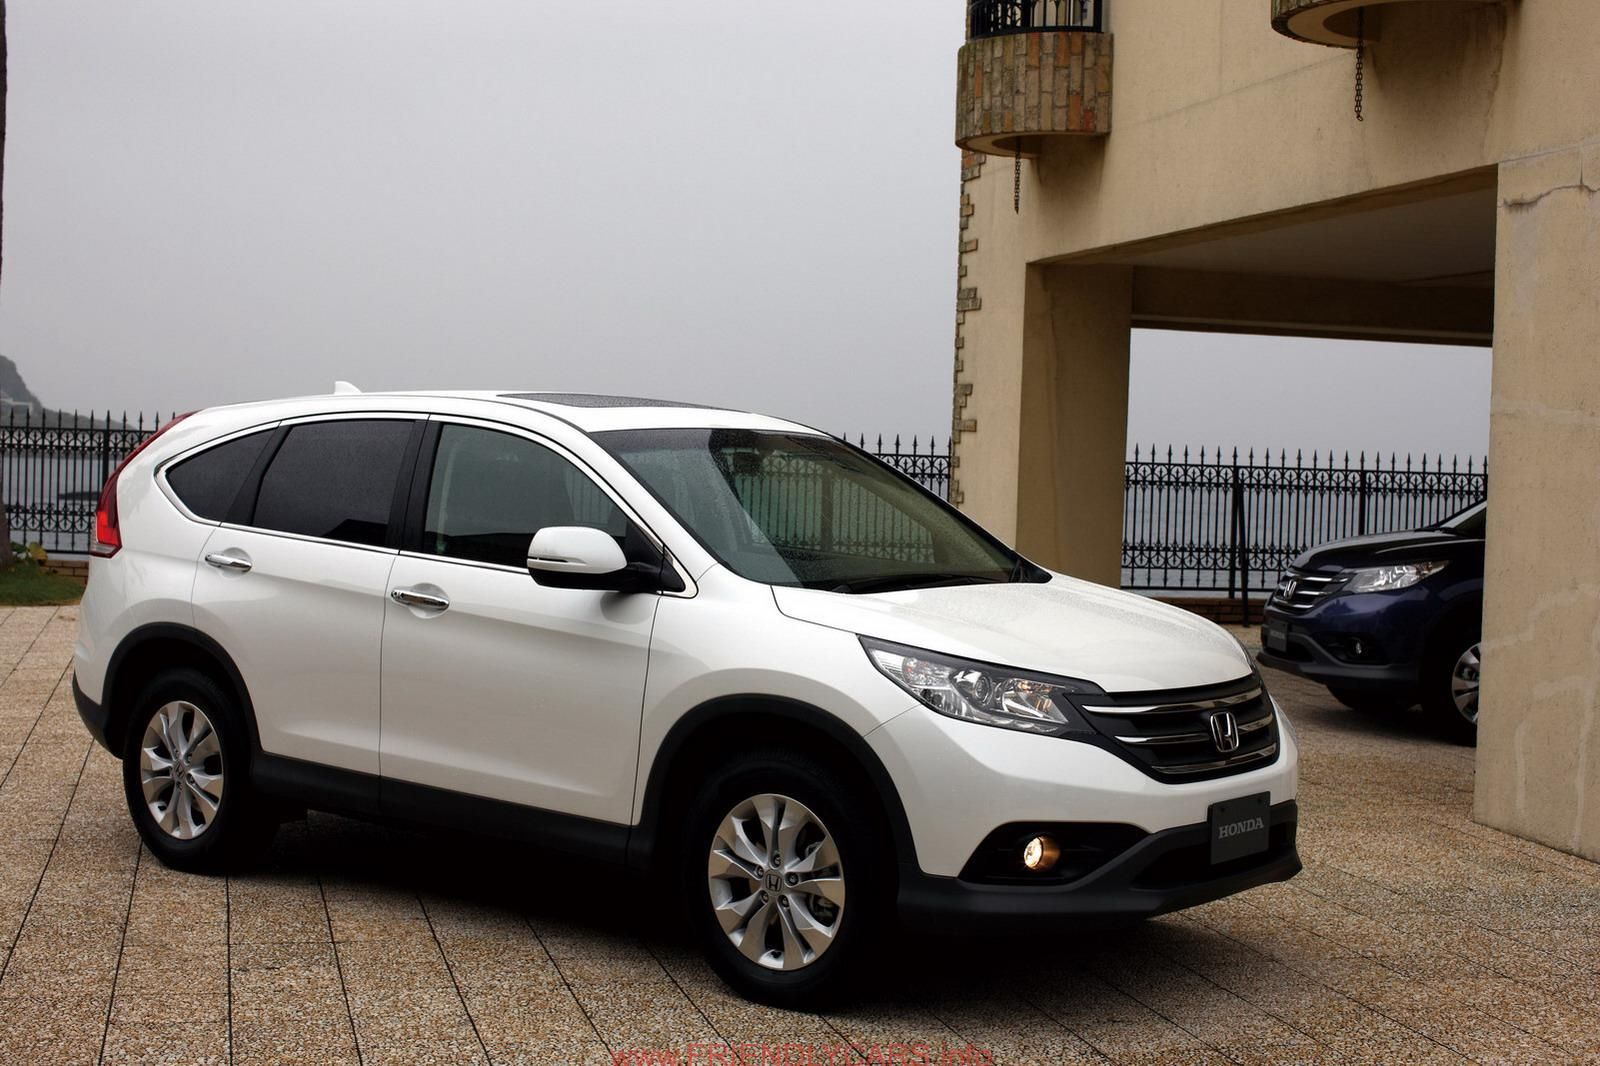 Cool 2014 honda cr v black car images hd new 2014 honda crv suv used